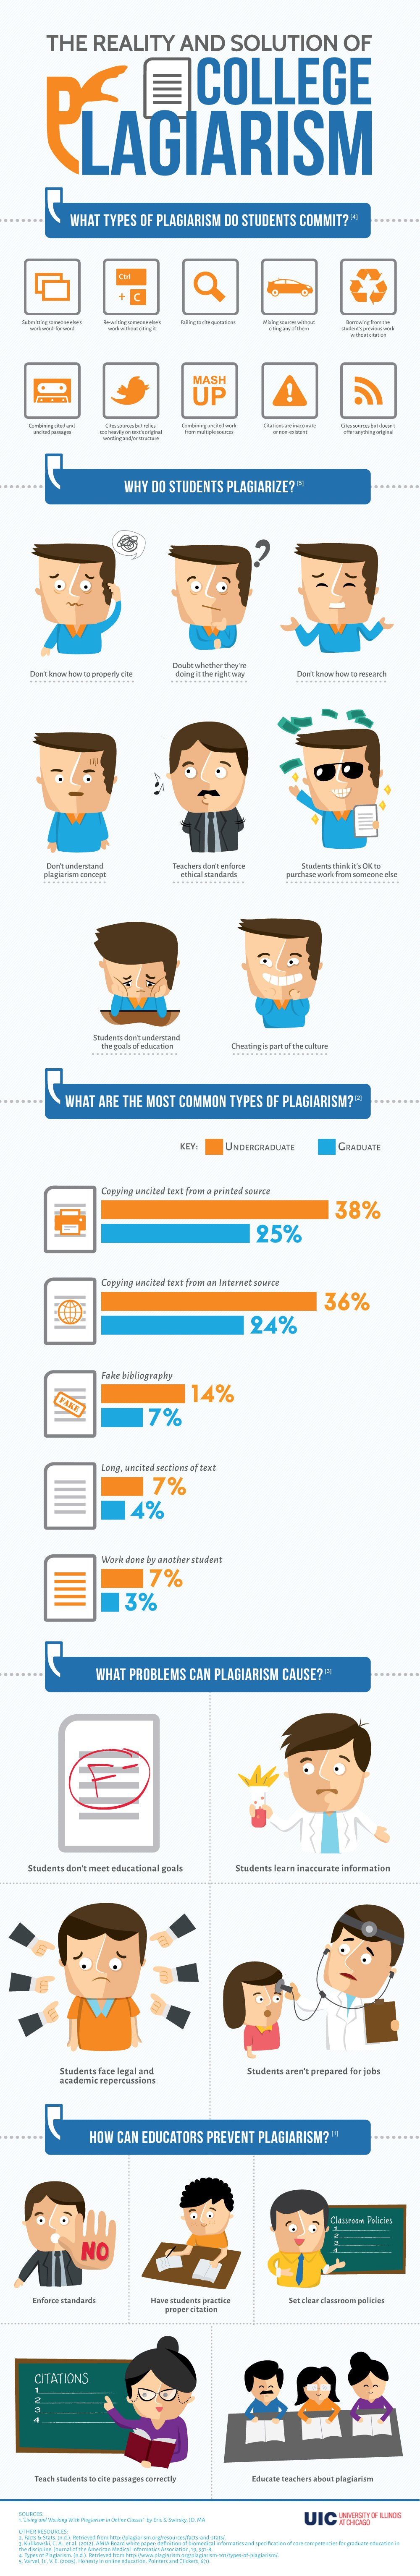 5 Common Types Of Plagiarism In College